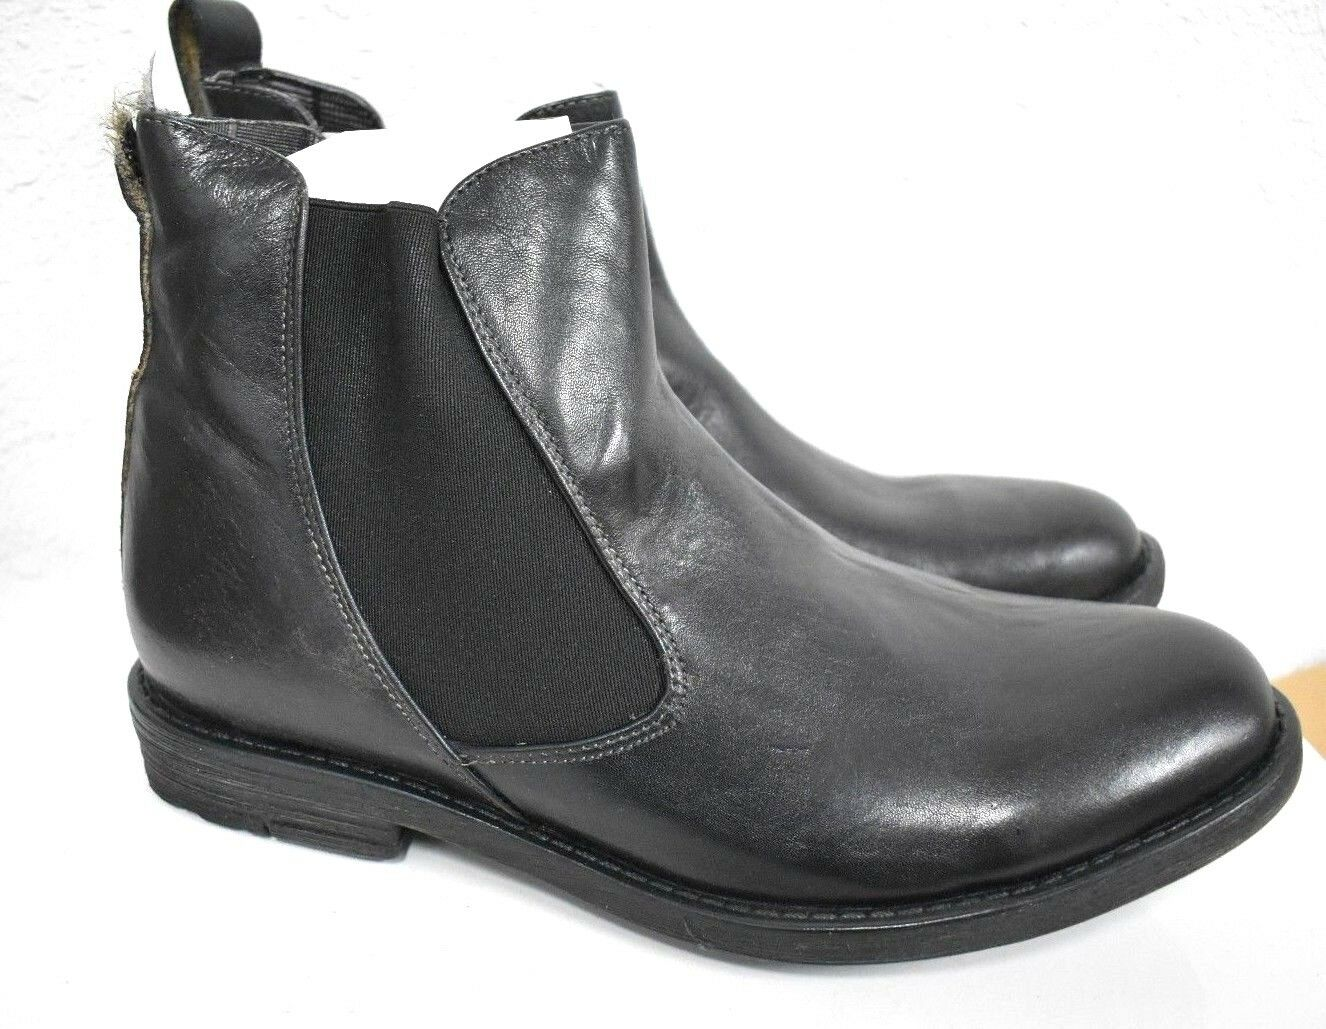 Bed Stu Men's Tribute Black Rustic Leather Chelsea Ankle Boots Booties Size 11